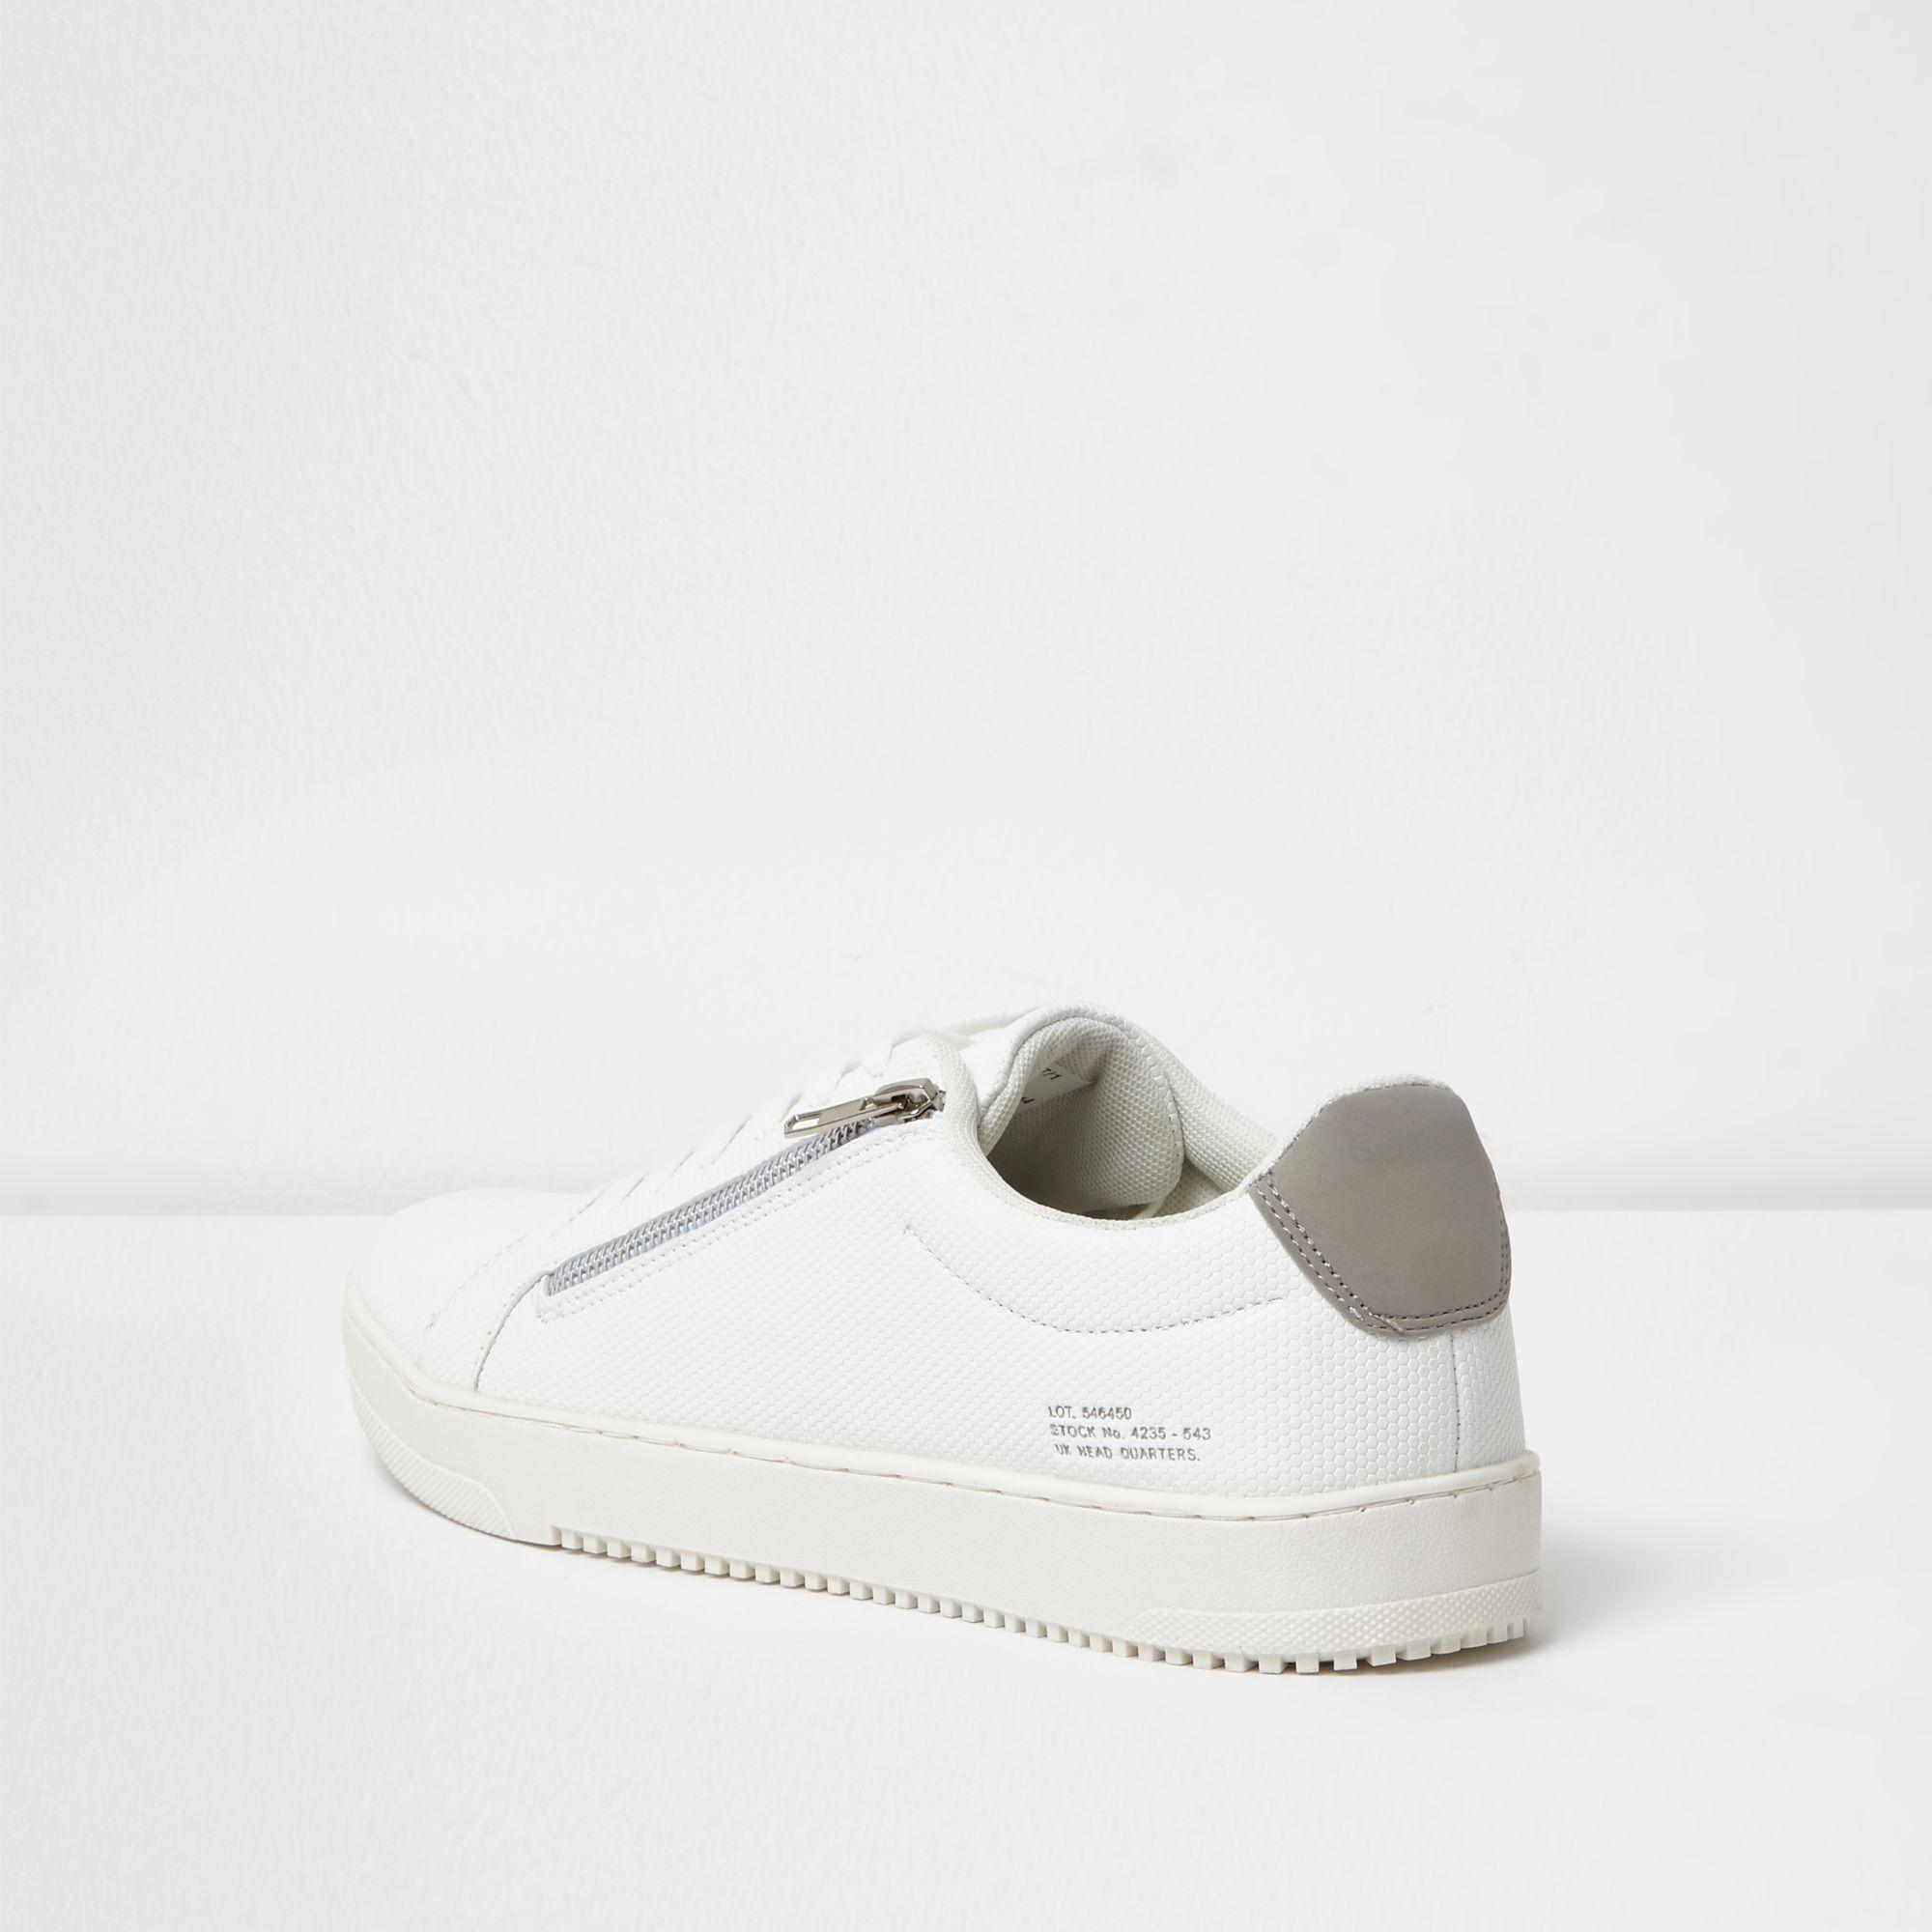 River Island Side Zip Lace-up Trainers in White for Men